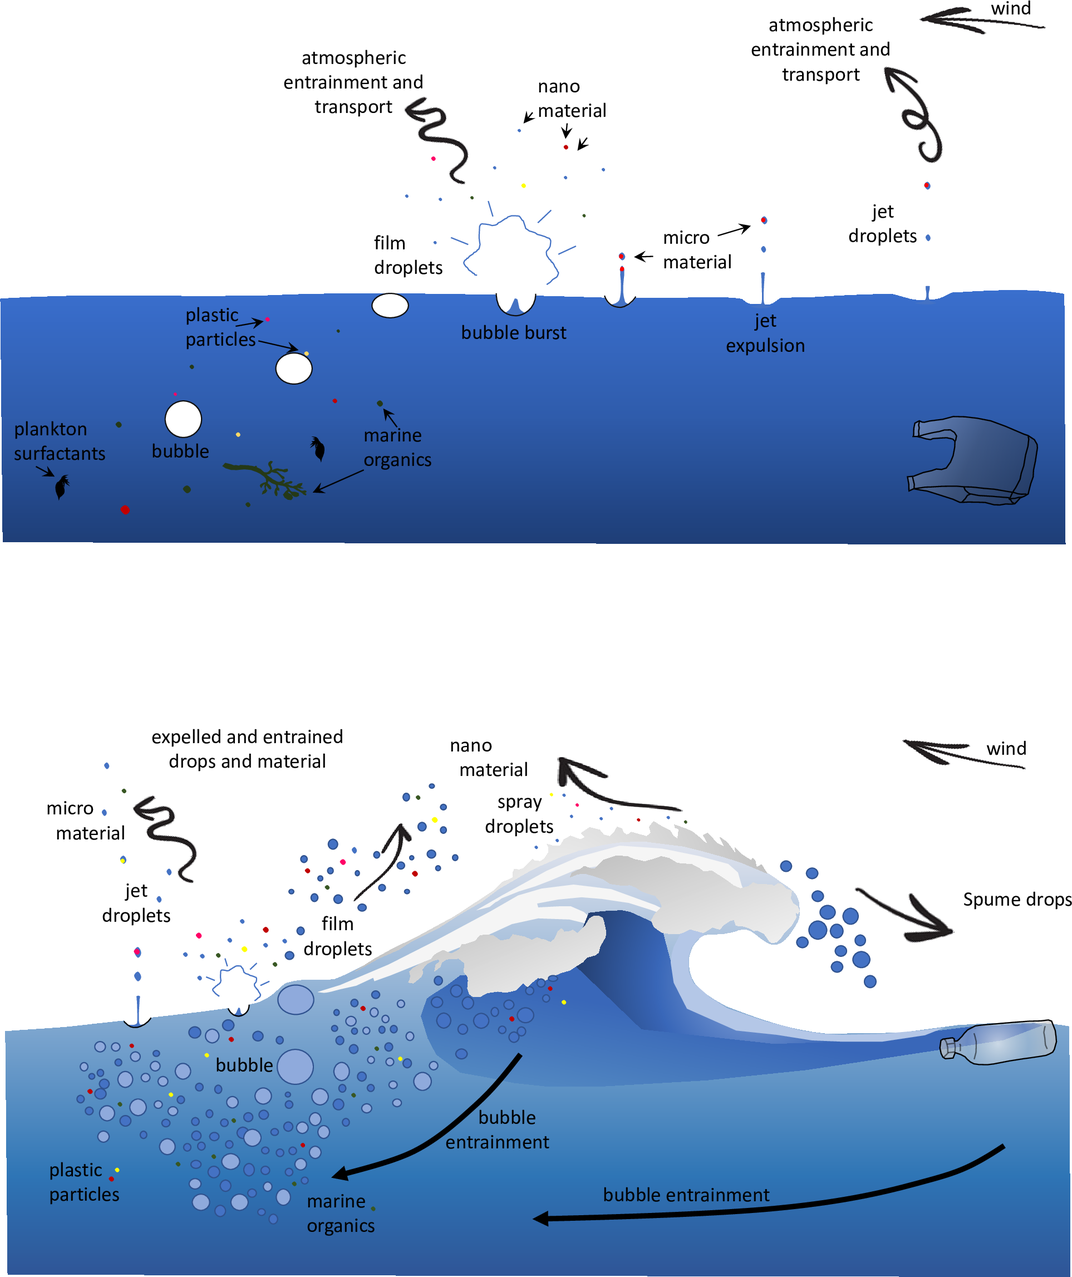 The Salty Sea Breeze Contains Microplastics, New Study Suggests